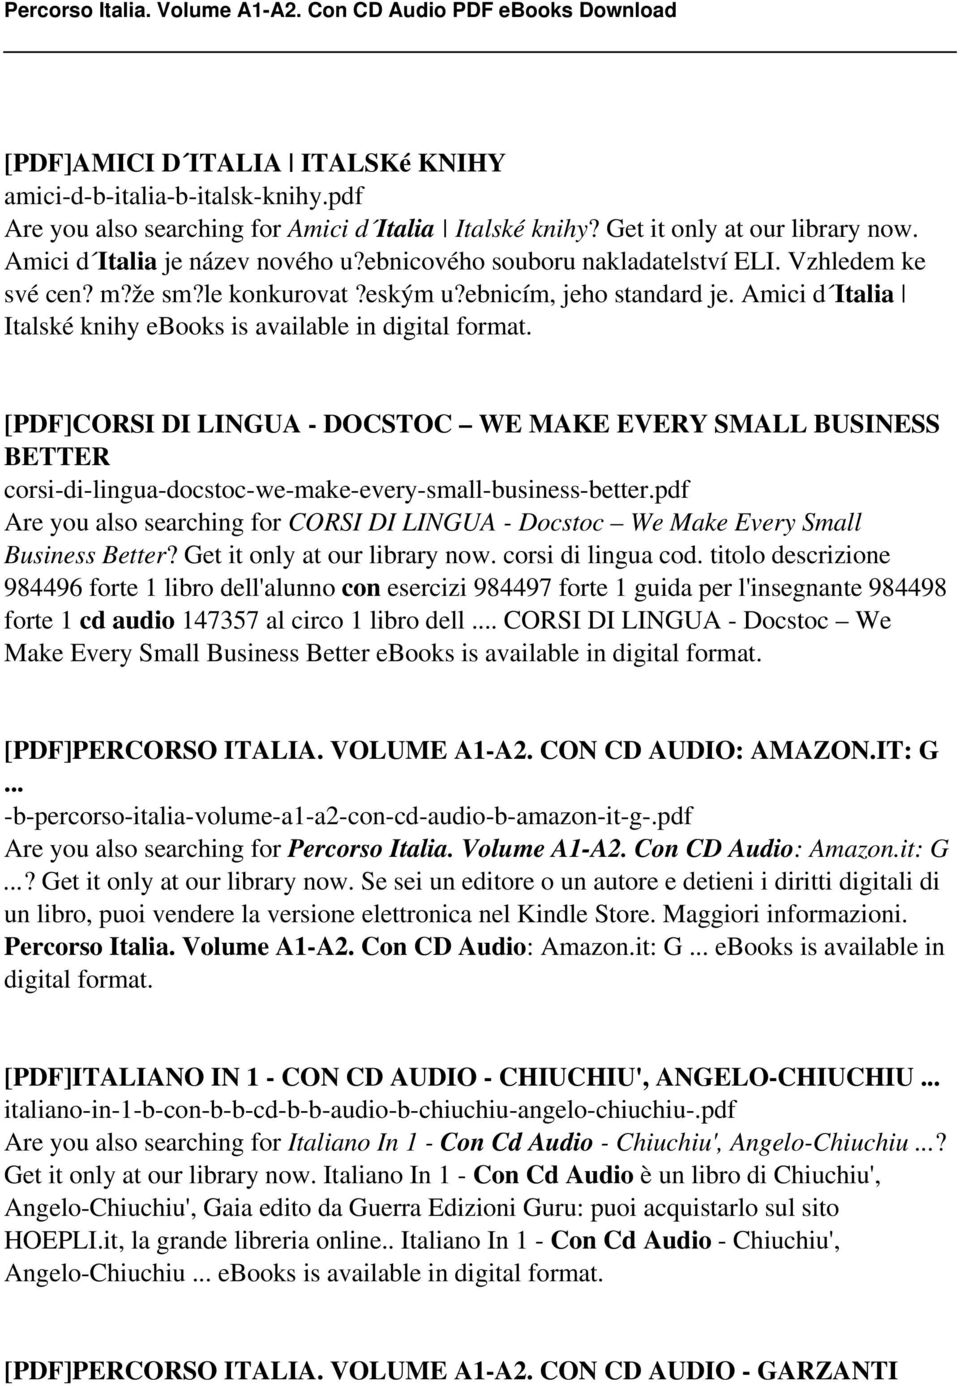 Percorso italia volume a1 a2 con cd audio pdf pdf pdfcorsi di lingua docstoc we make every small business better corsi fandeluxe